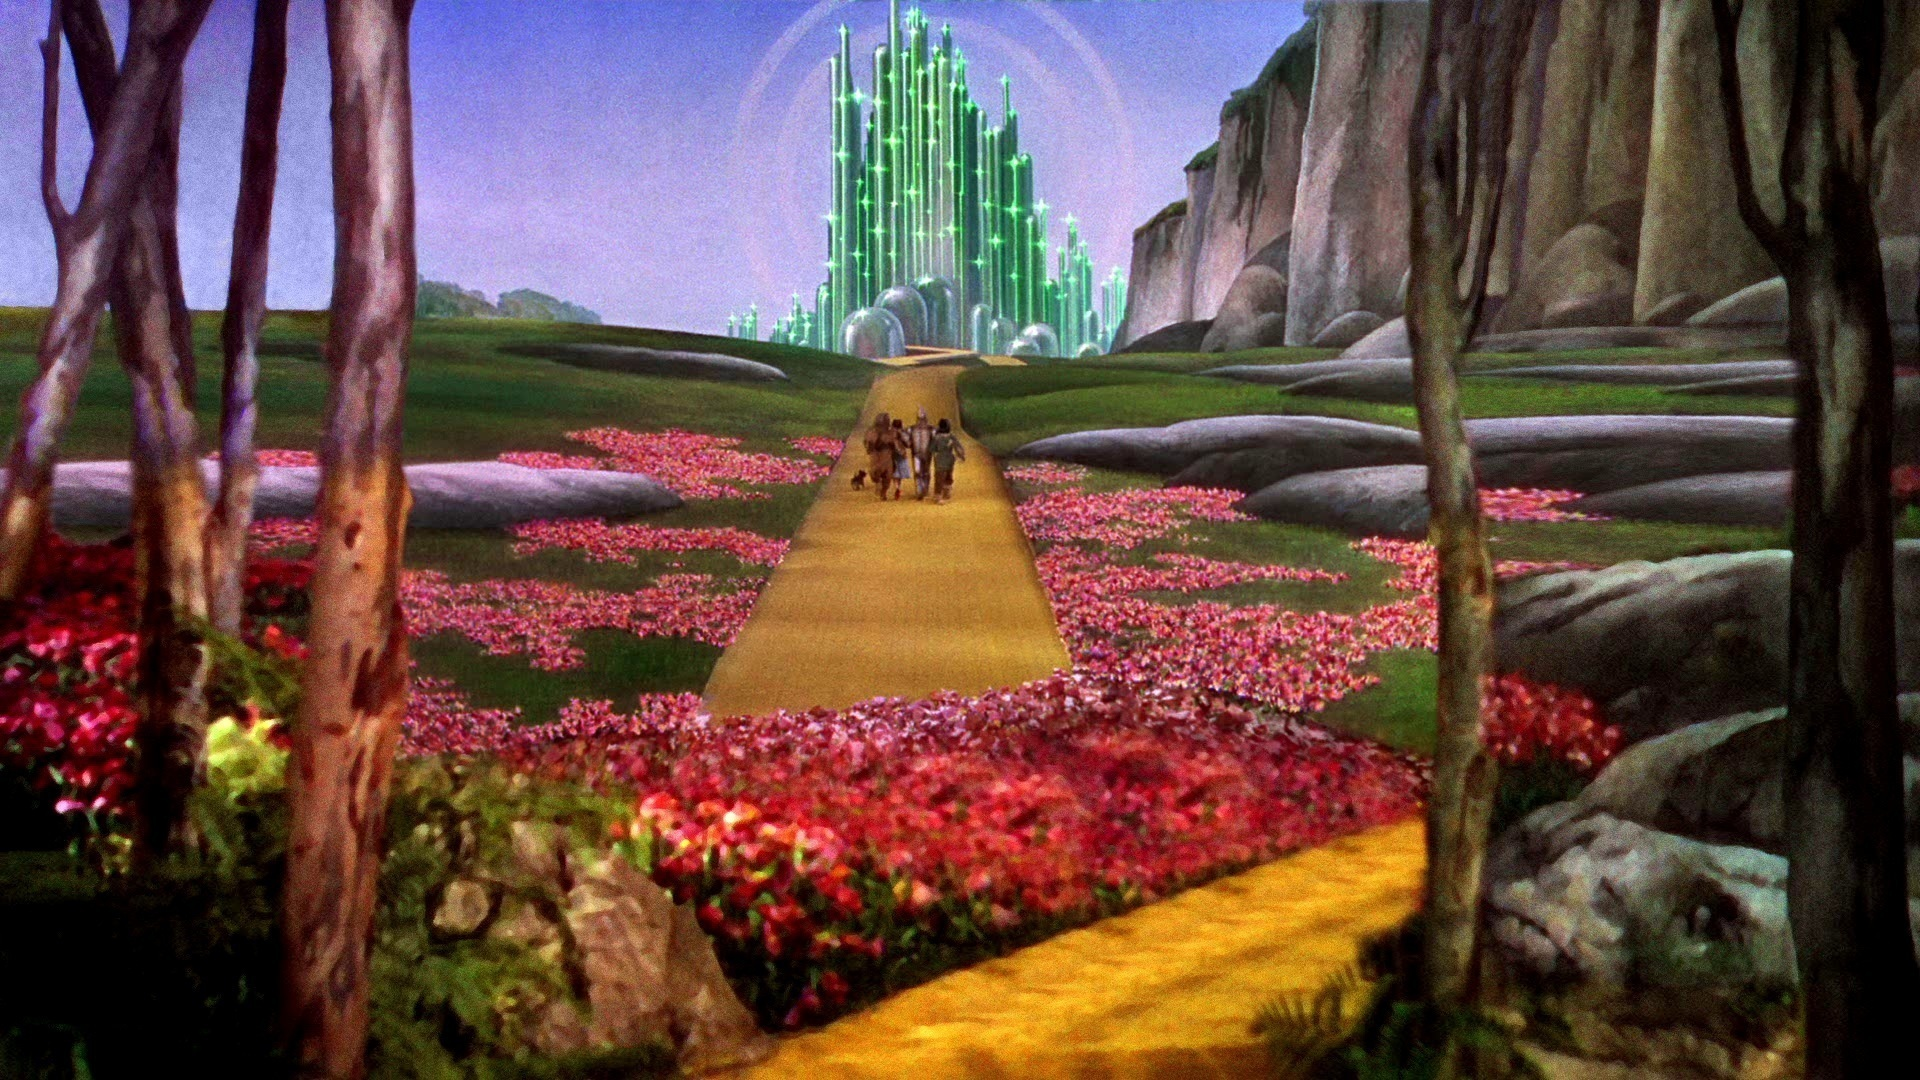 the wizard of oz an exploration In a wizard of oz test, the user experience is a complete simulation of the actual intended product, but with a slight time delay since a human cannot react as fast as a computer the delivered value proposition is almost identical but slightly under performing.